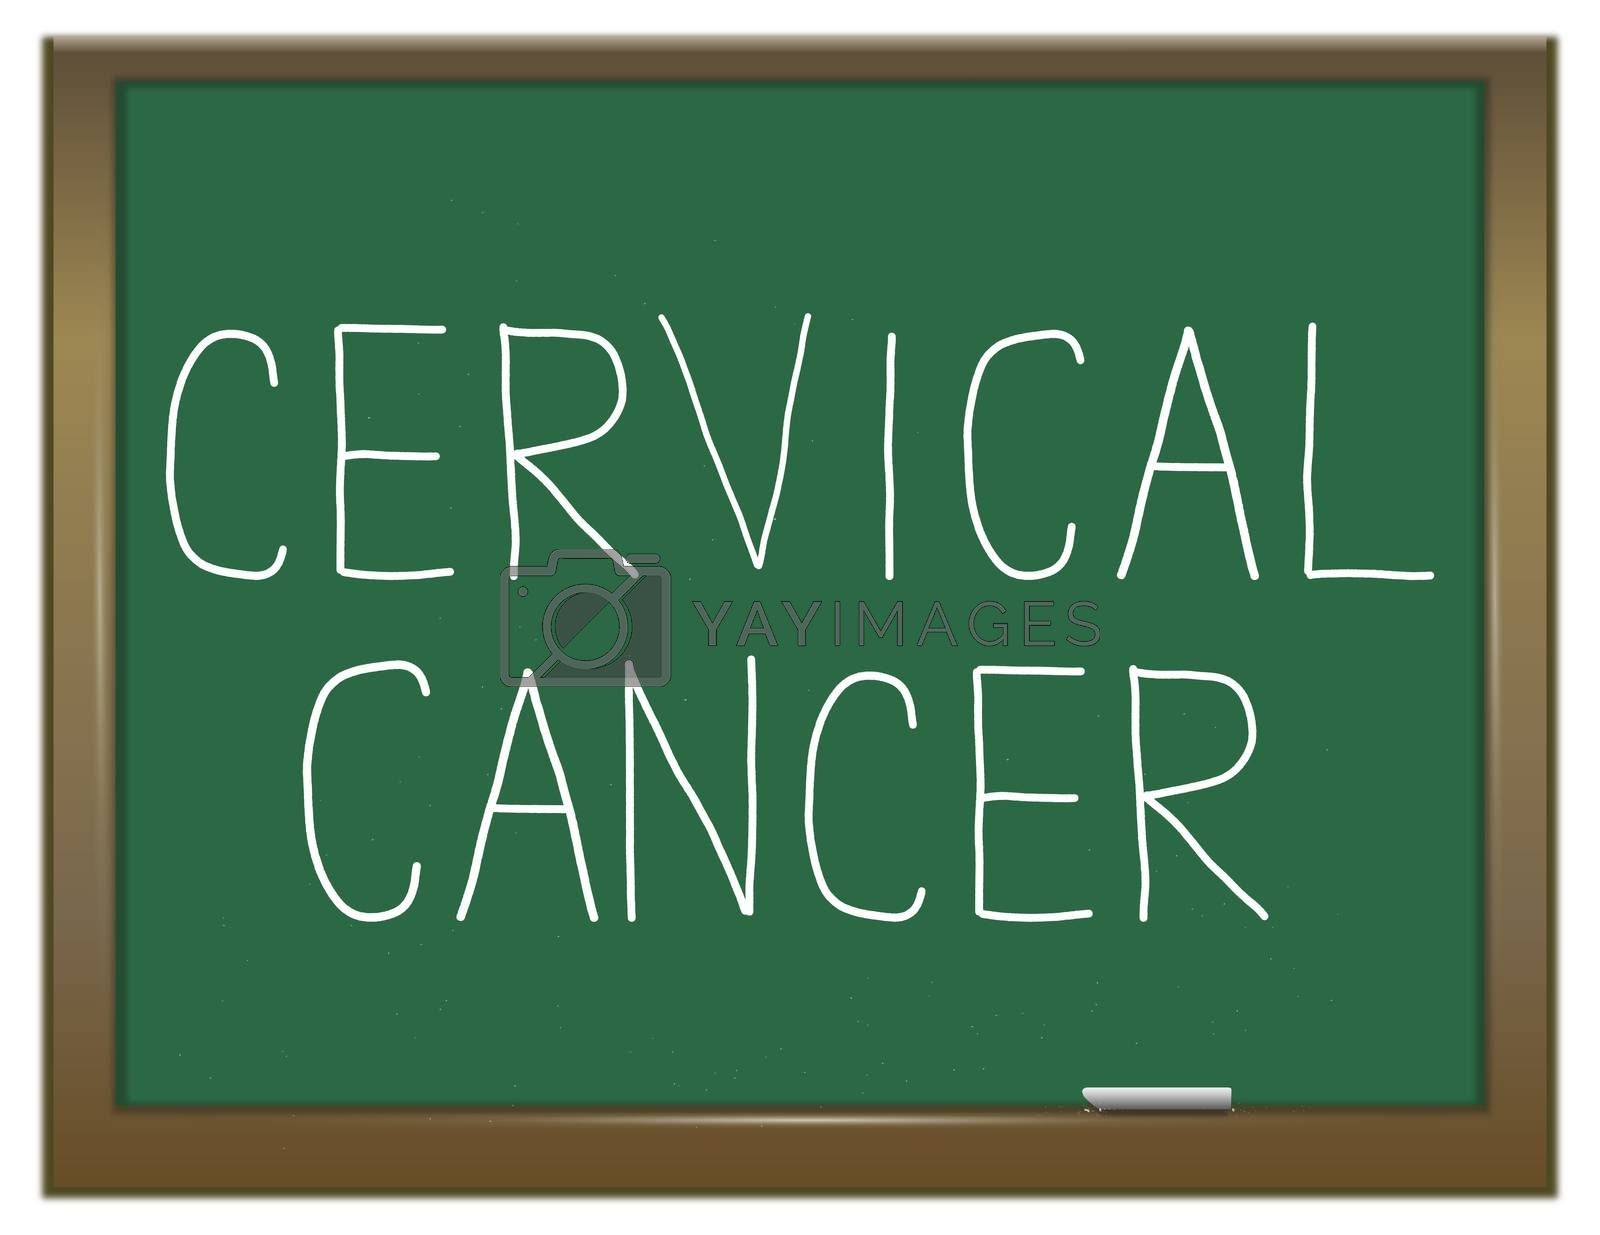 Illustration depicting a green chalkboard with a cervical cancer concept.